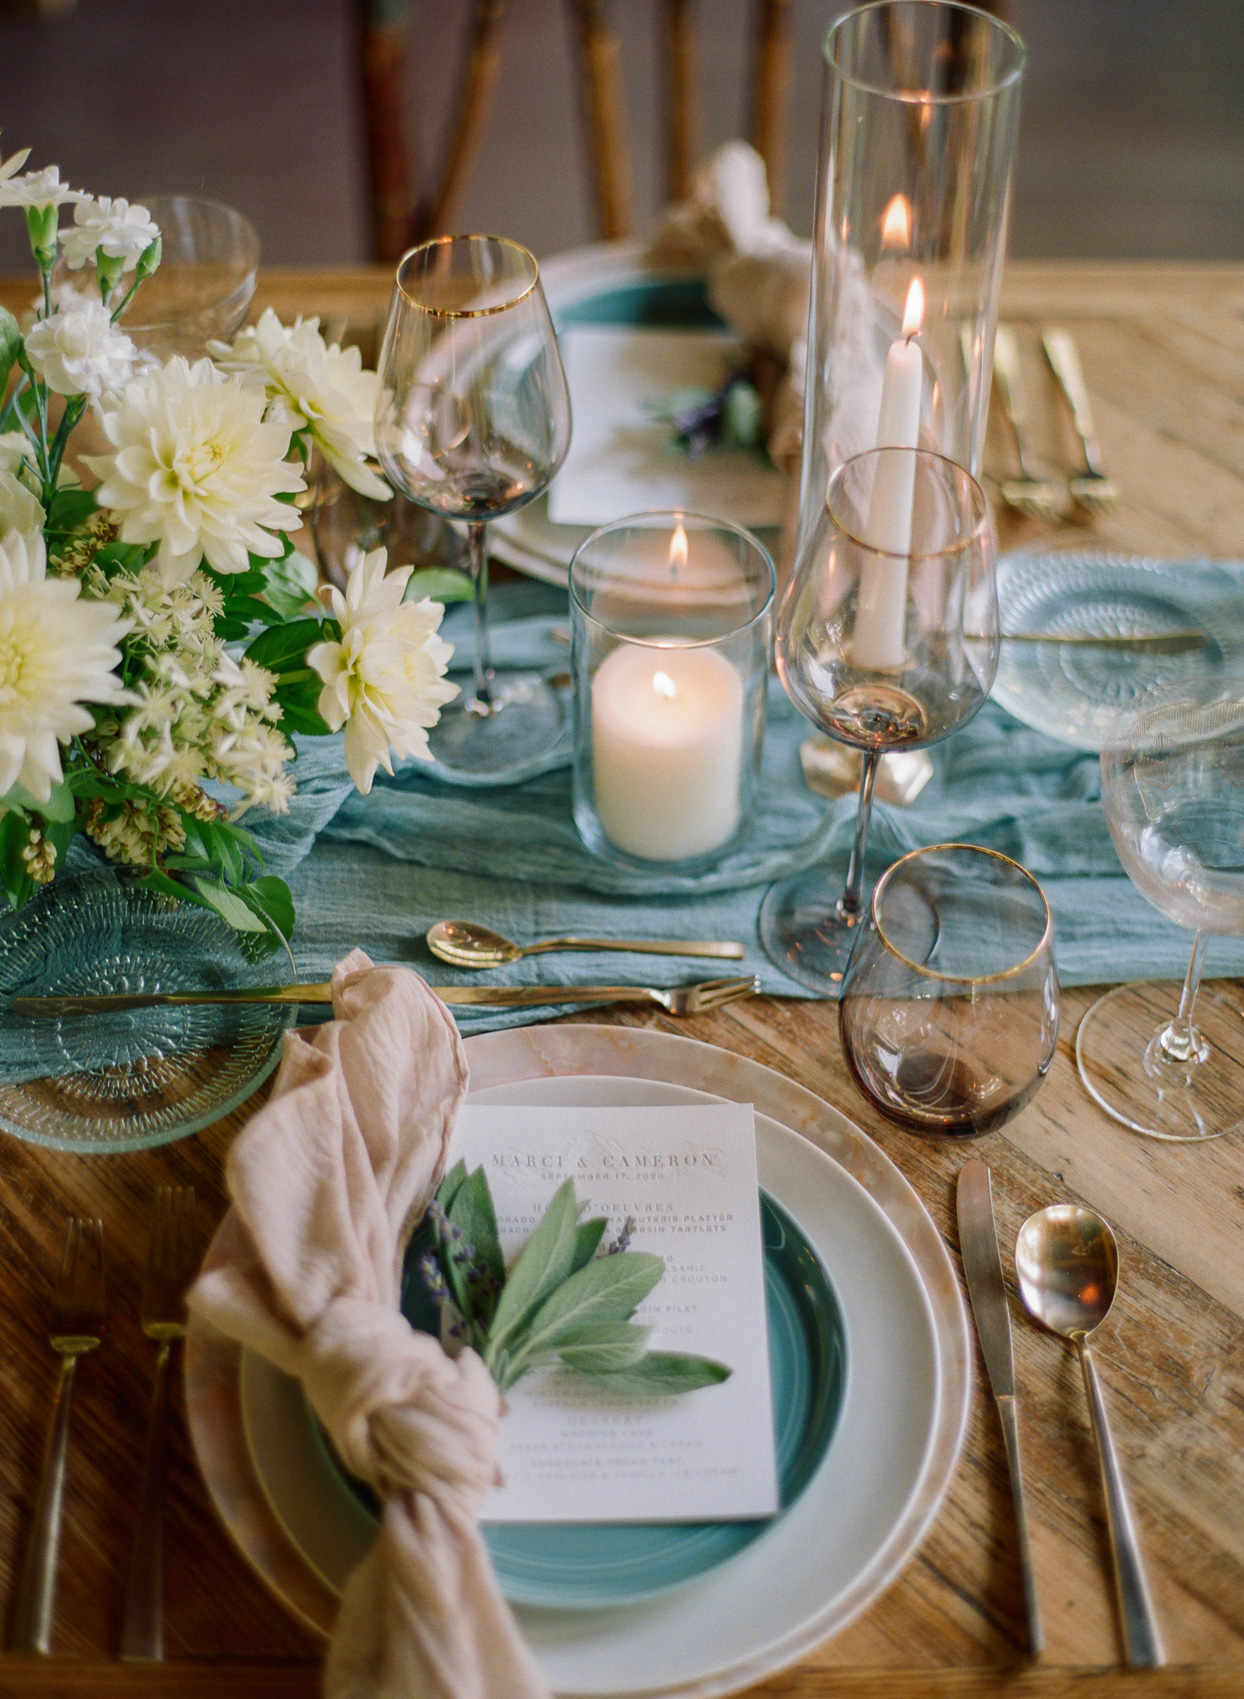 table setting with menu and floral arrangement